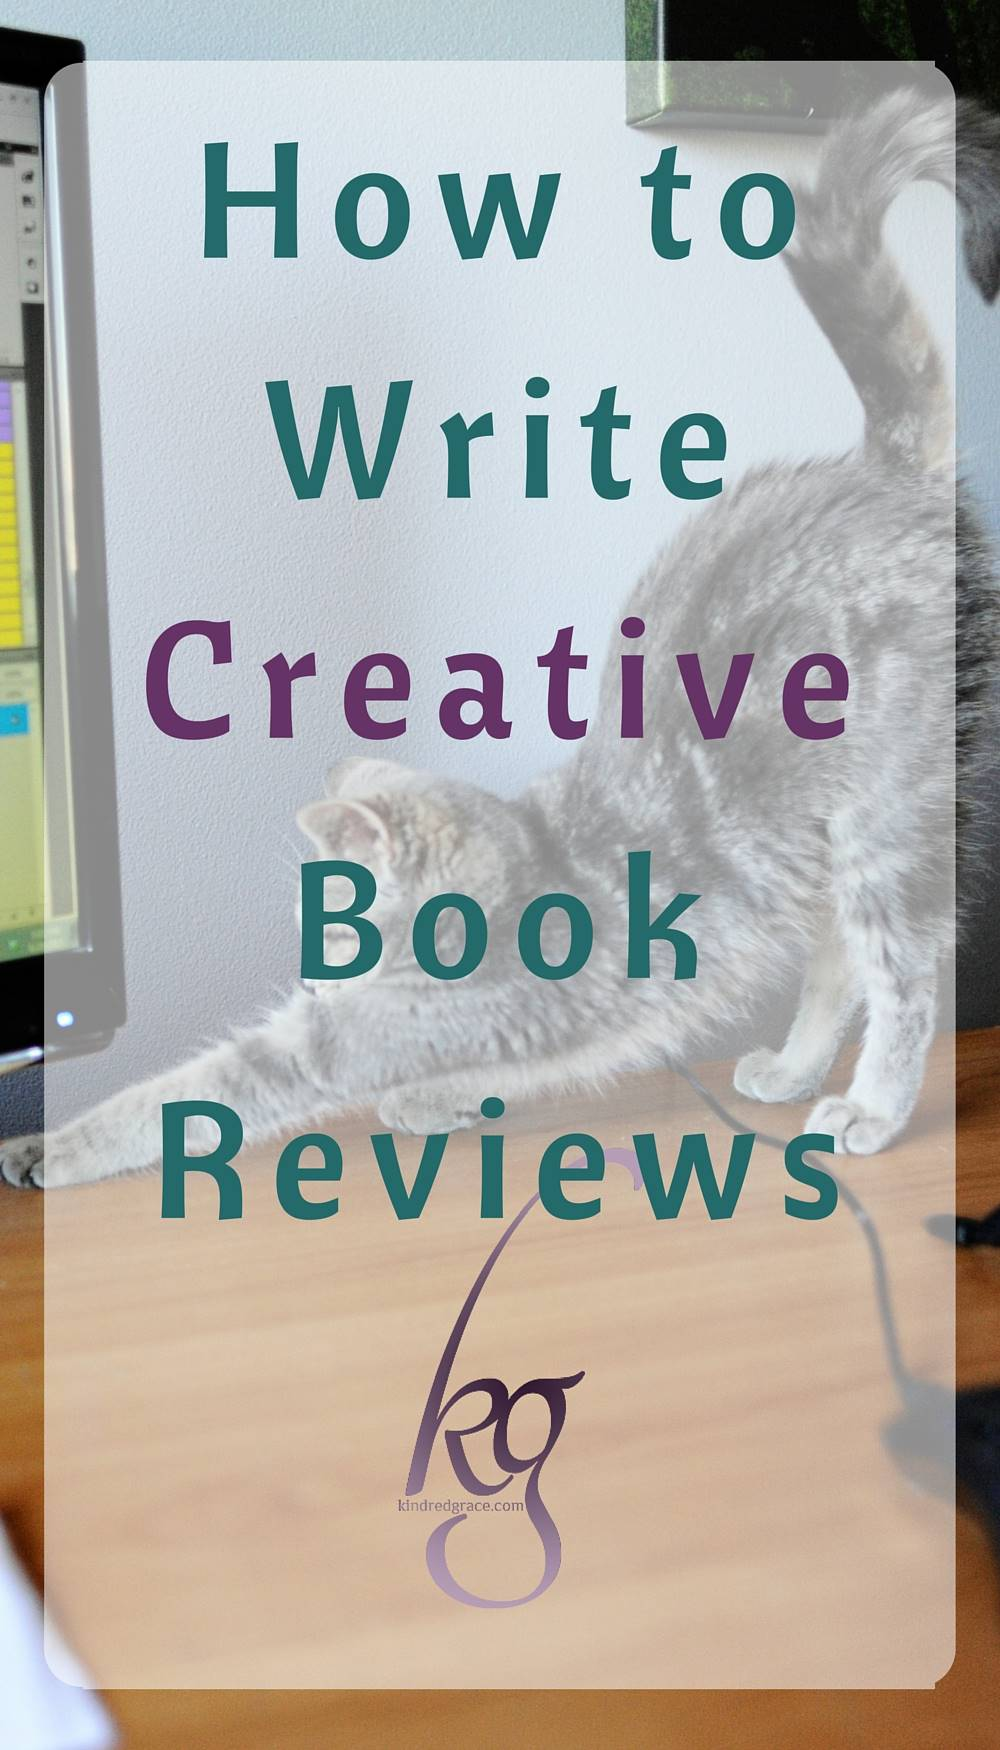 essays on book review How to write a book review essay book review essay writing can seem an onerous task – especially if you've never written one before they are highly individual because everything stated is your personal view and what the book meant to you as an individual.